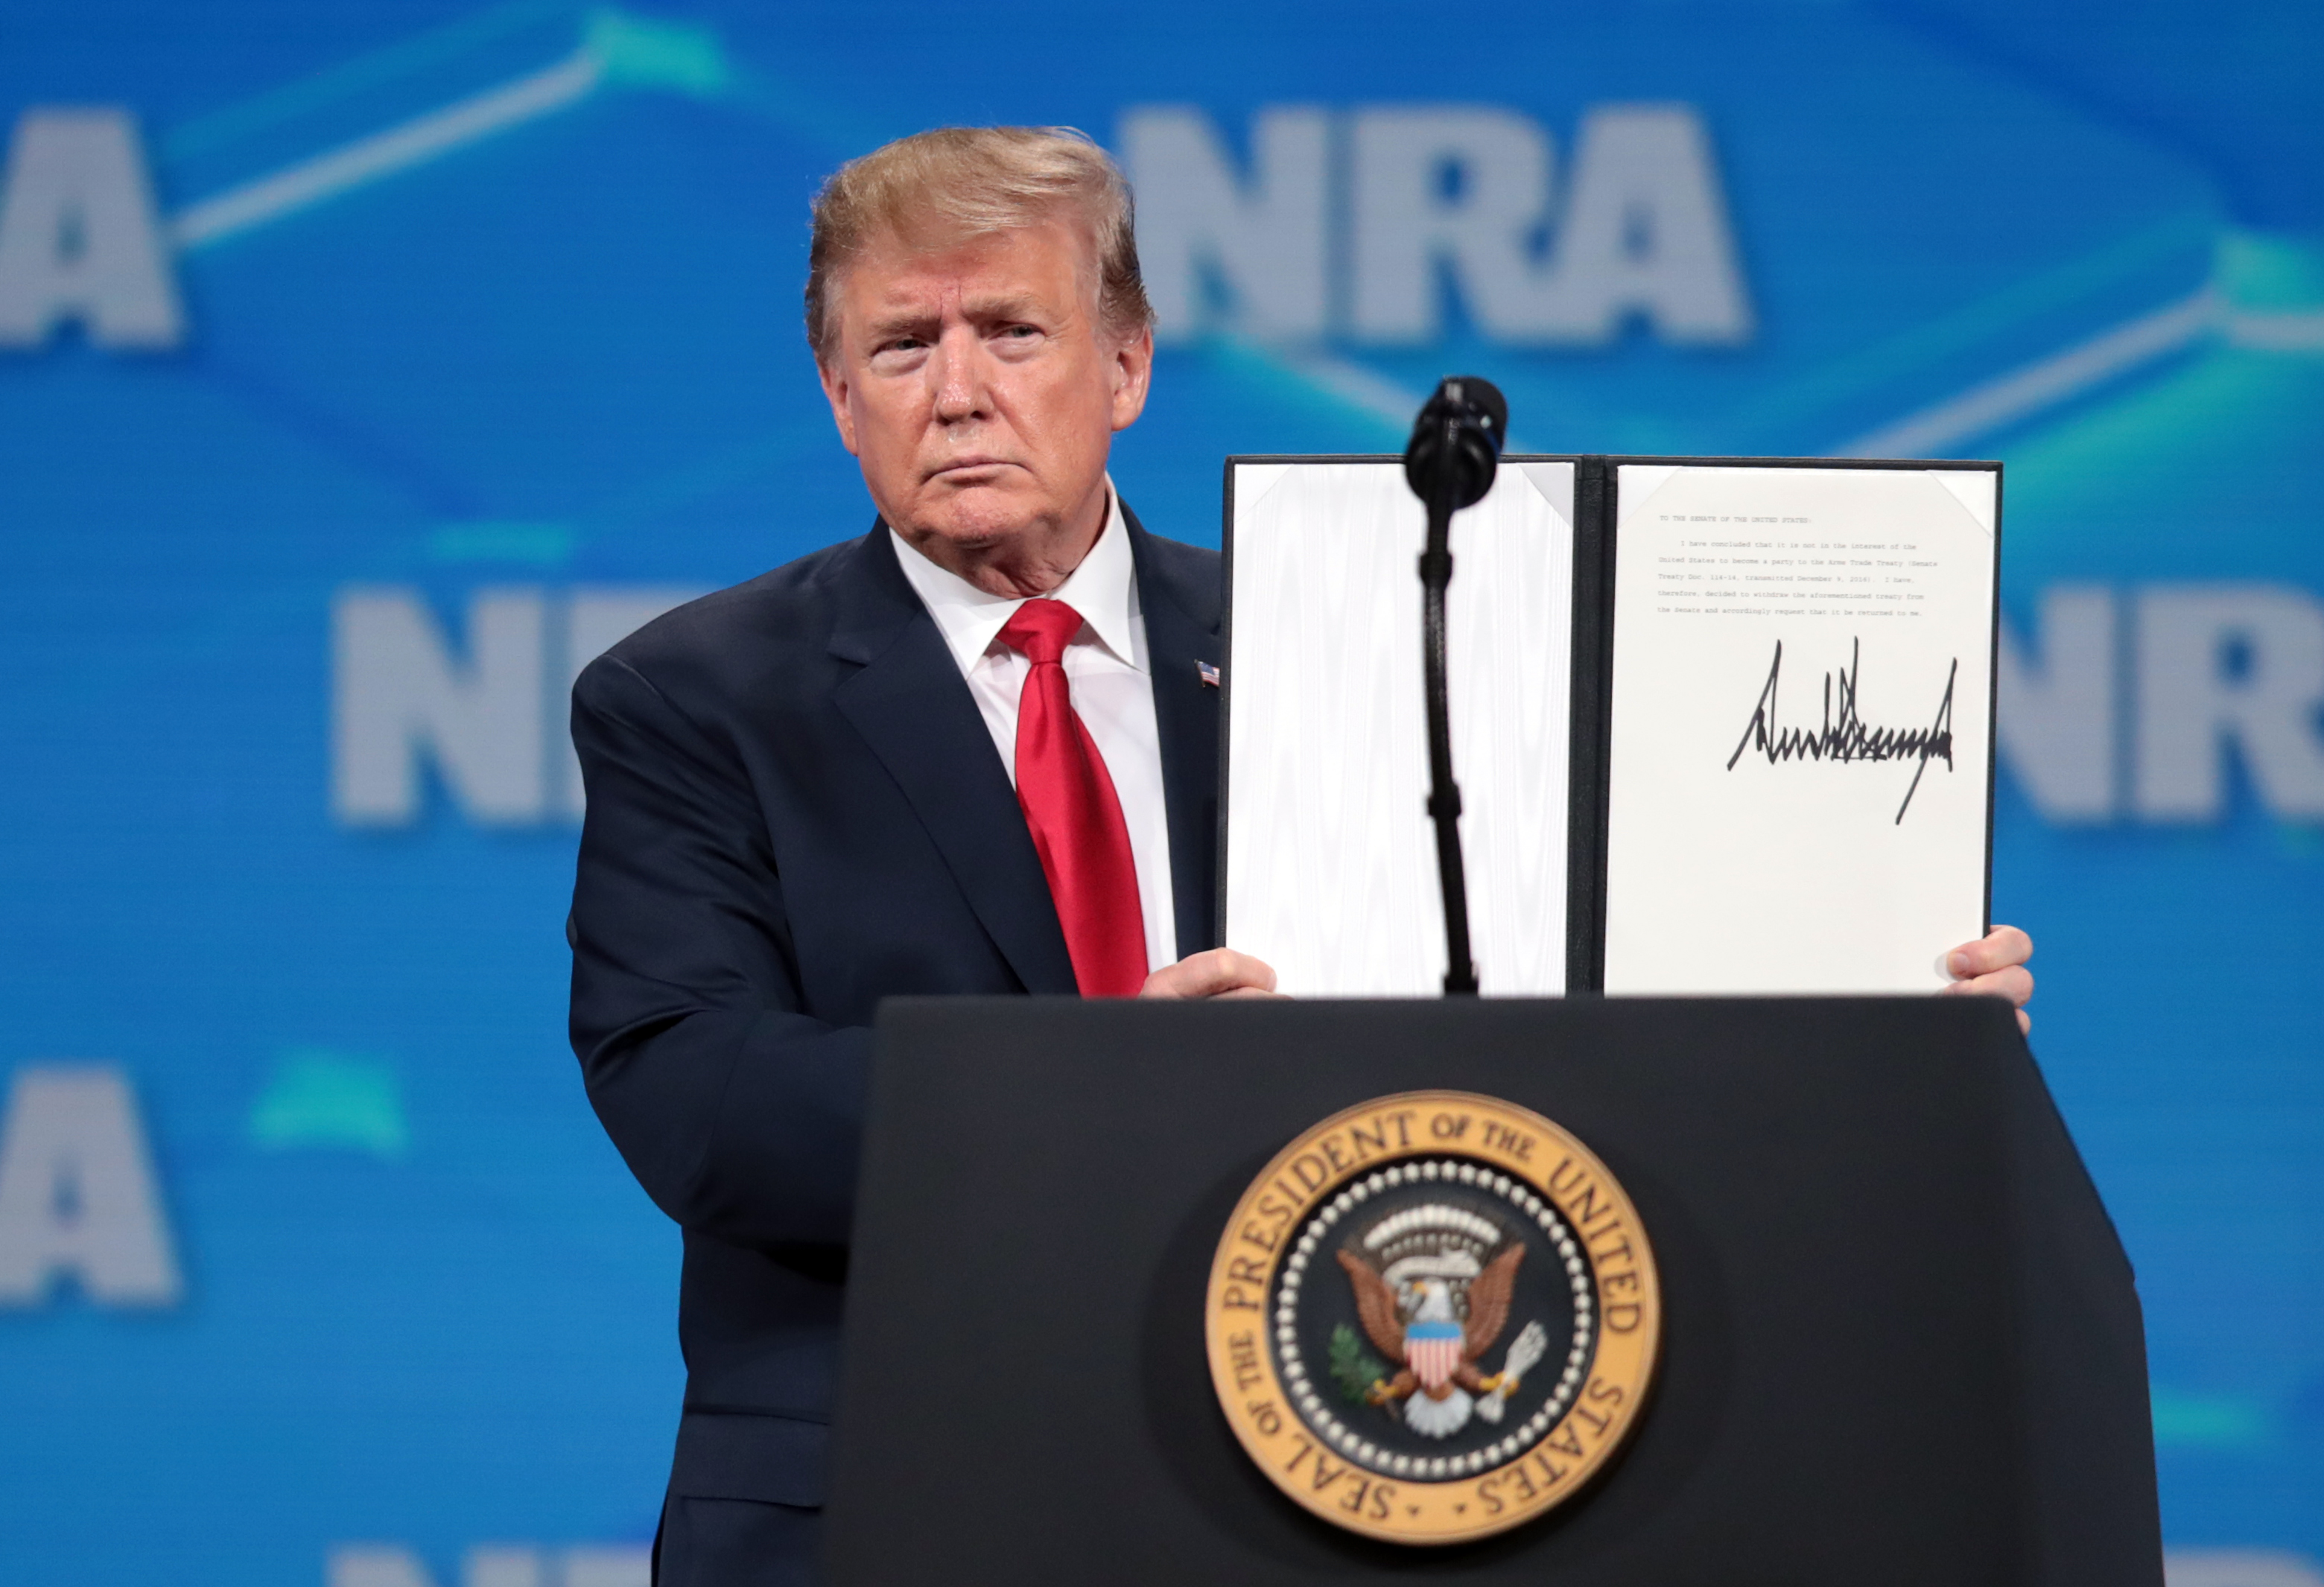 U.S. President Donald Trump shows off a signed document rejecting the U.N. Arms Trade Treaty at the annual meeting of the National Rifle Association on April 26, 2019, in Indianapolis, Ind. (Scott Olson/Getty Images)